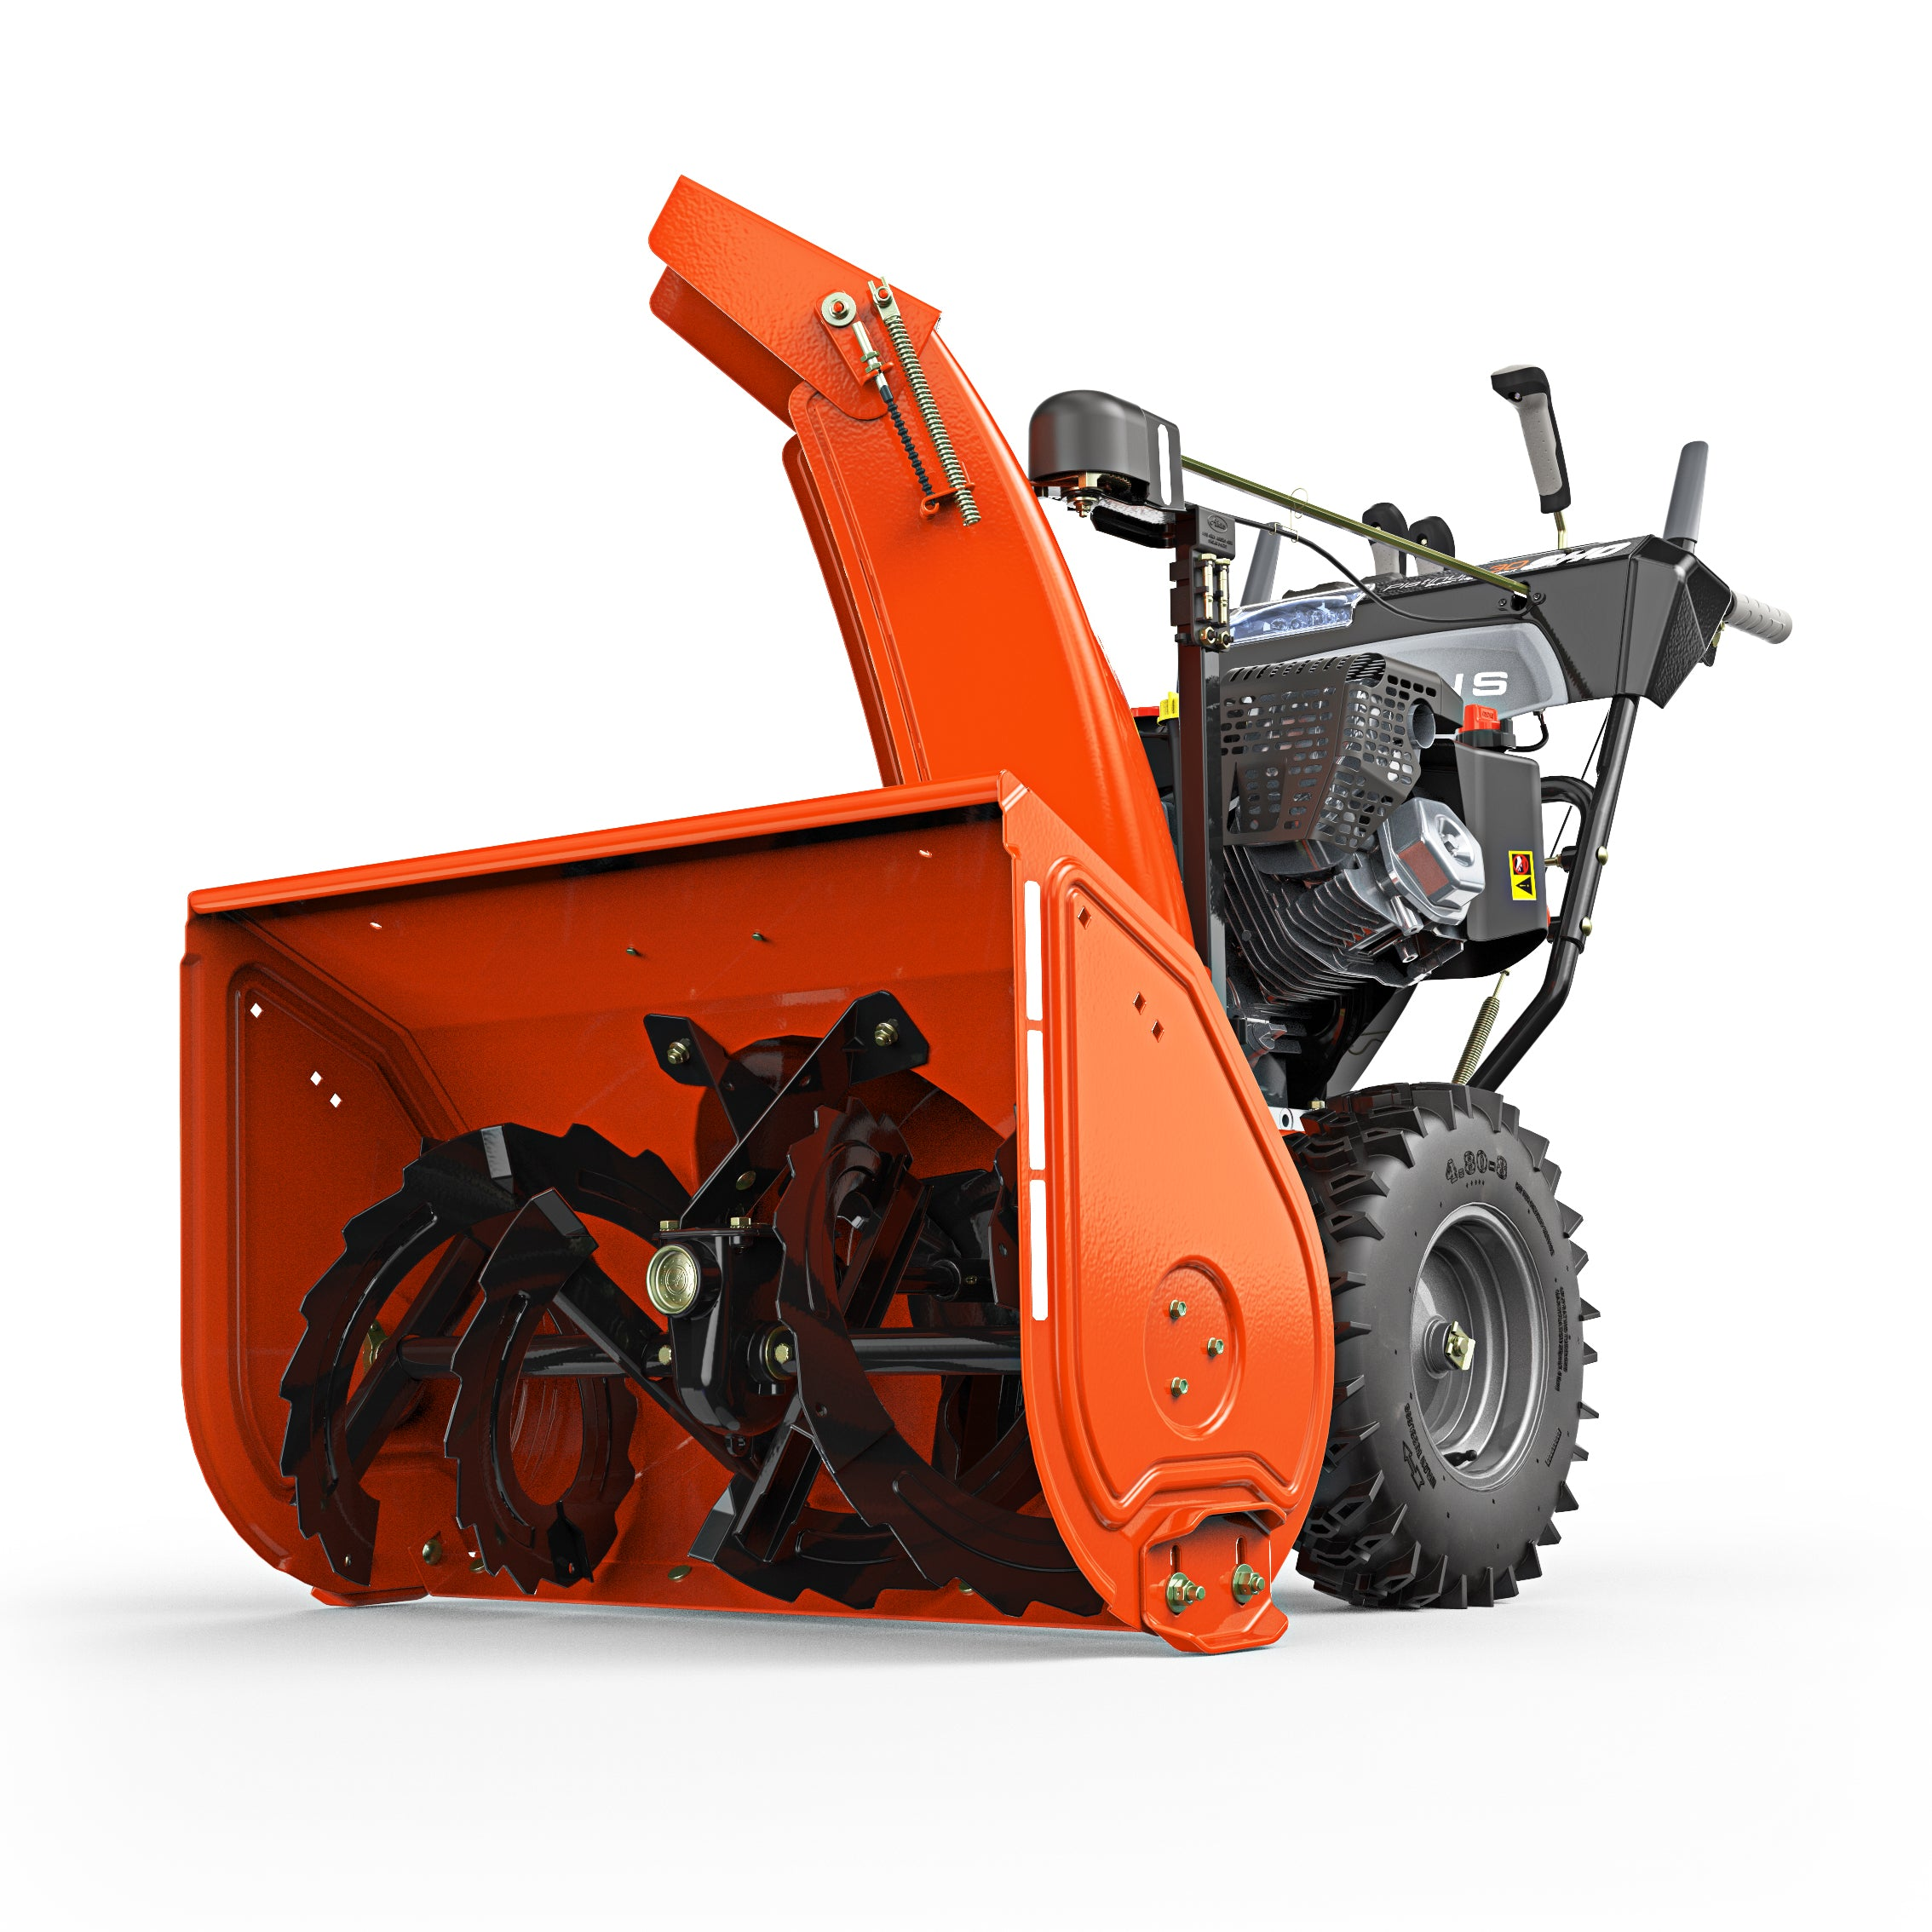 """Supercharger Blower Oil Change: Ariens Platinum 30 SHO (30"""") 414cc Two-Stage Snow Blower"""